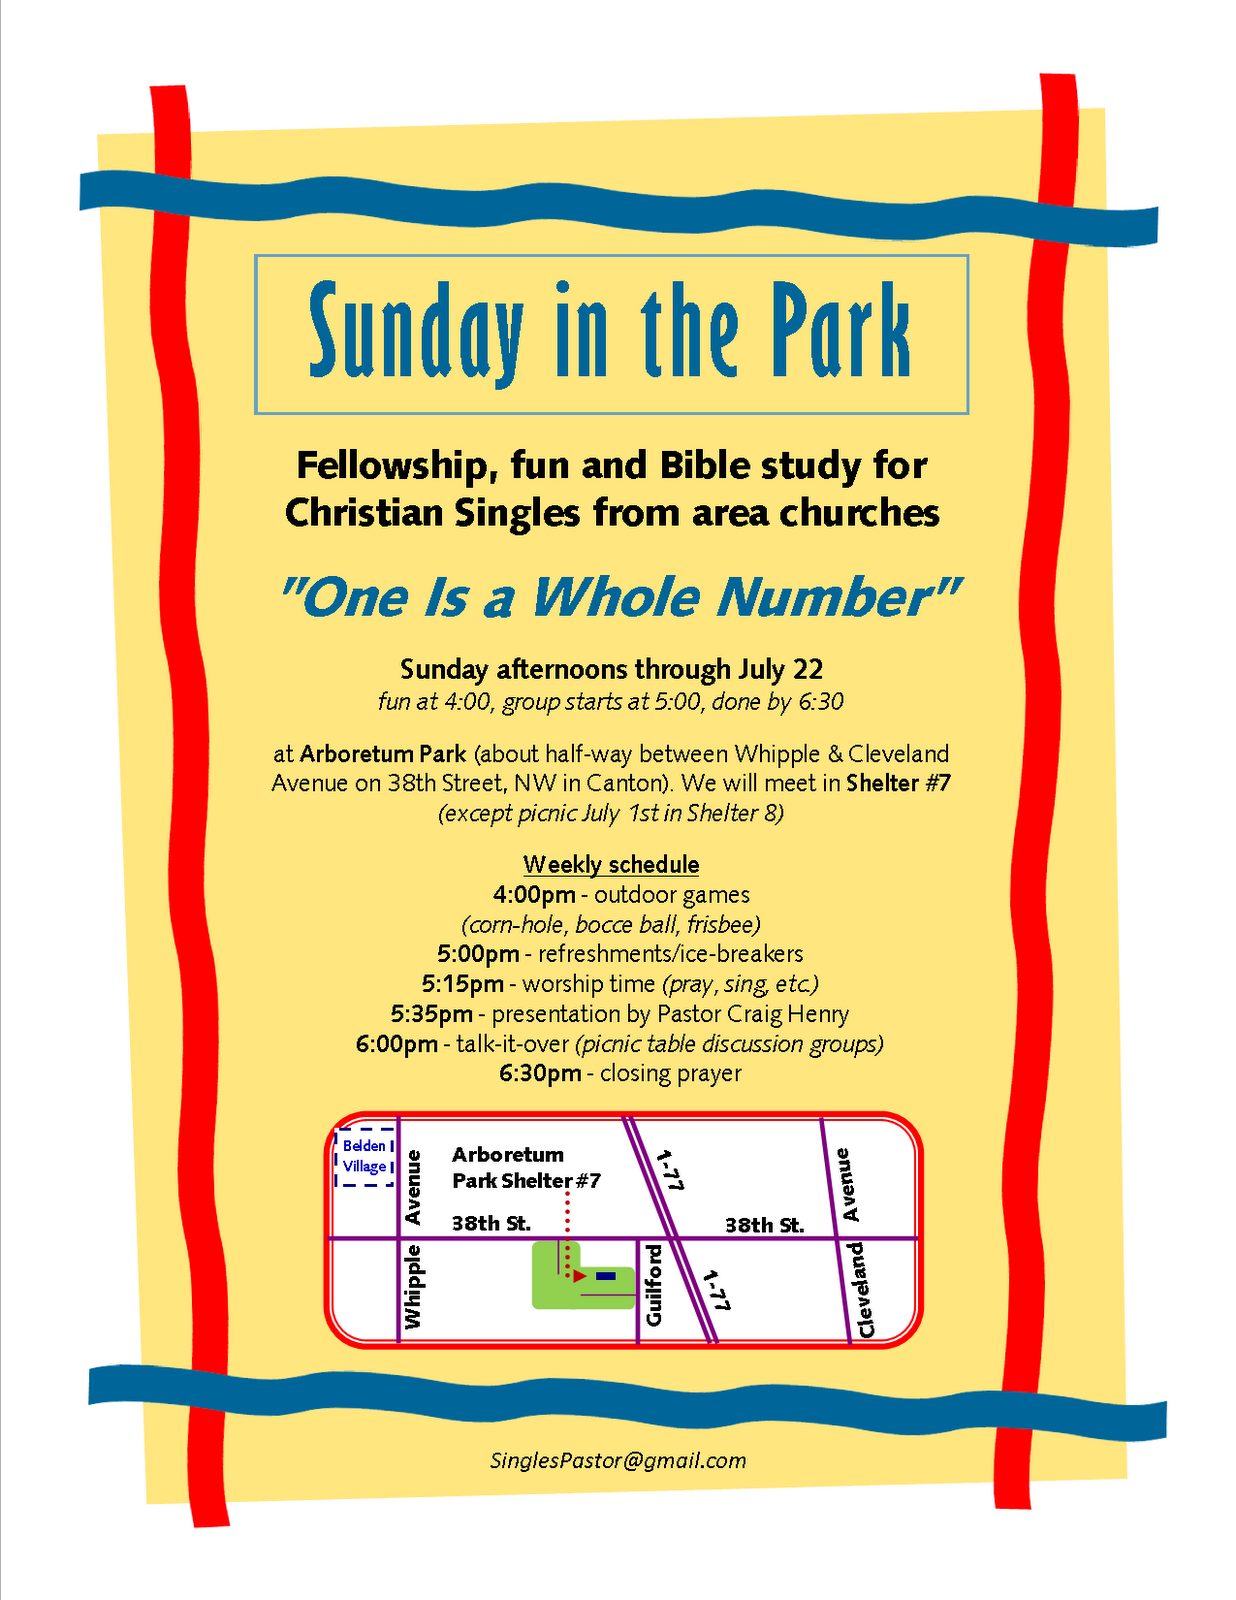 bible school park single personals High school christian school a sunday morning bible study for single singles 2gather is a sunday morning bible study class for 50+ singles to grow in their.